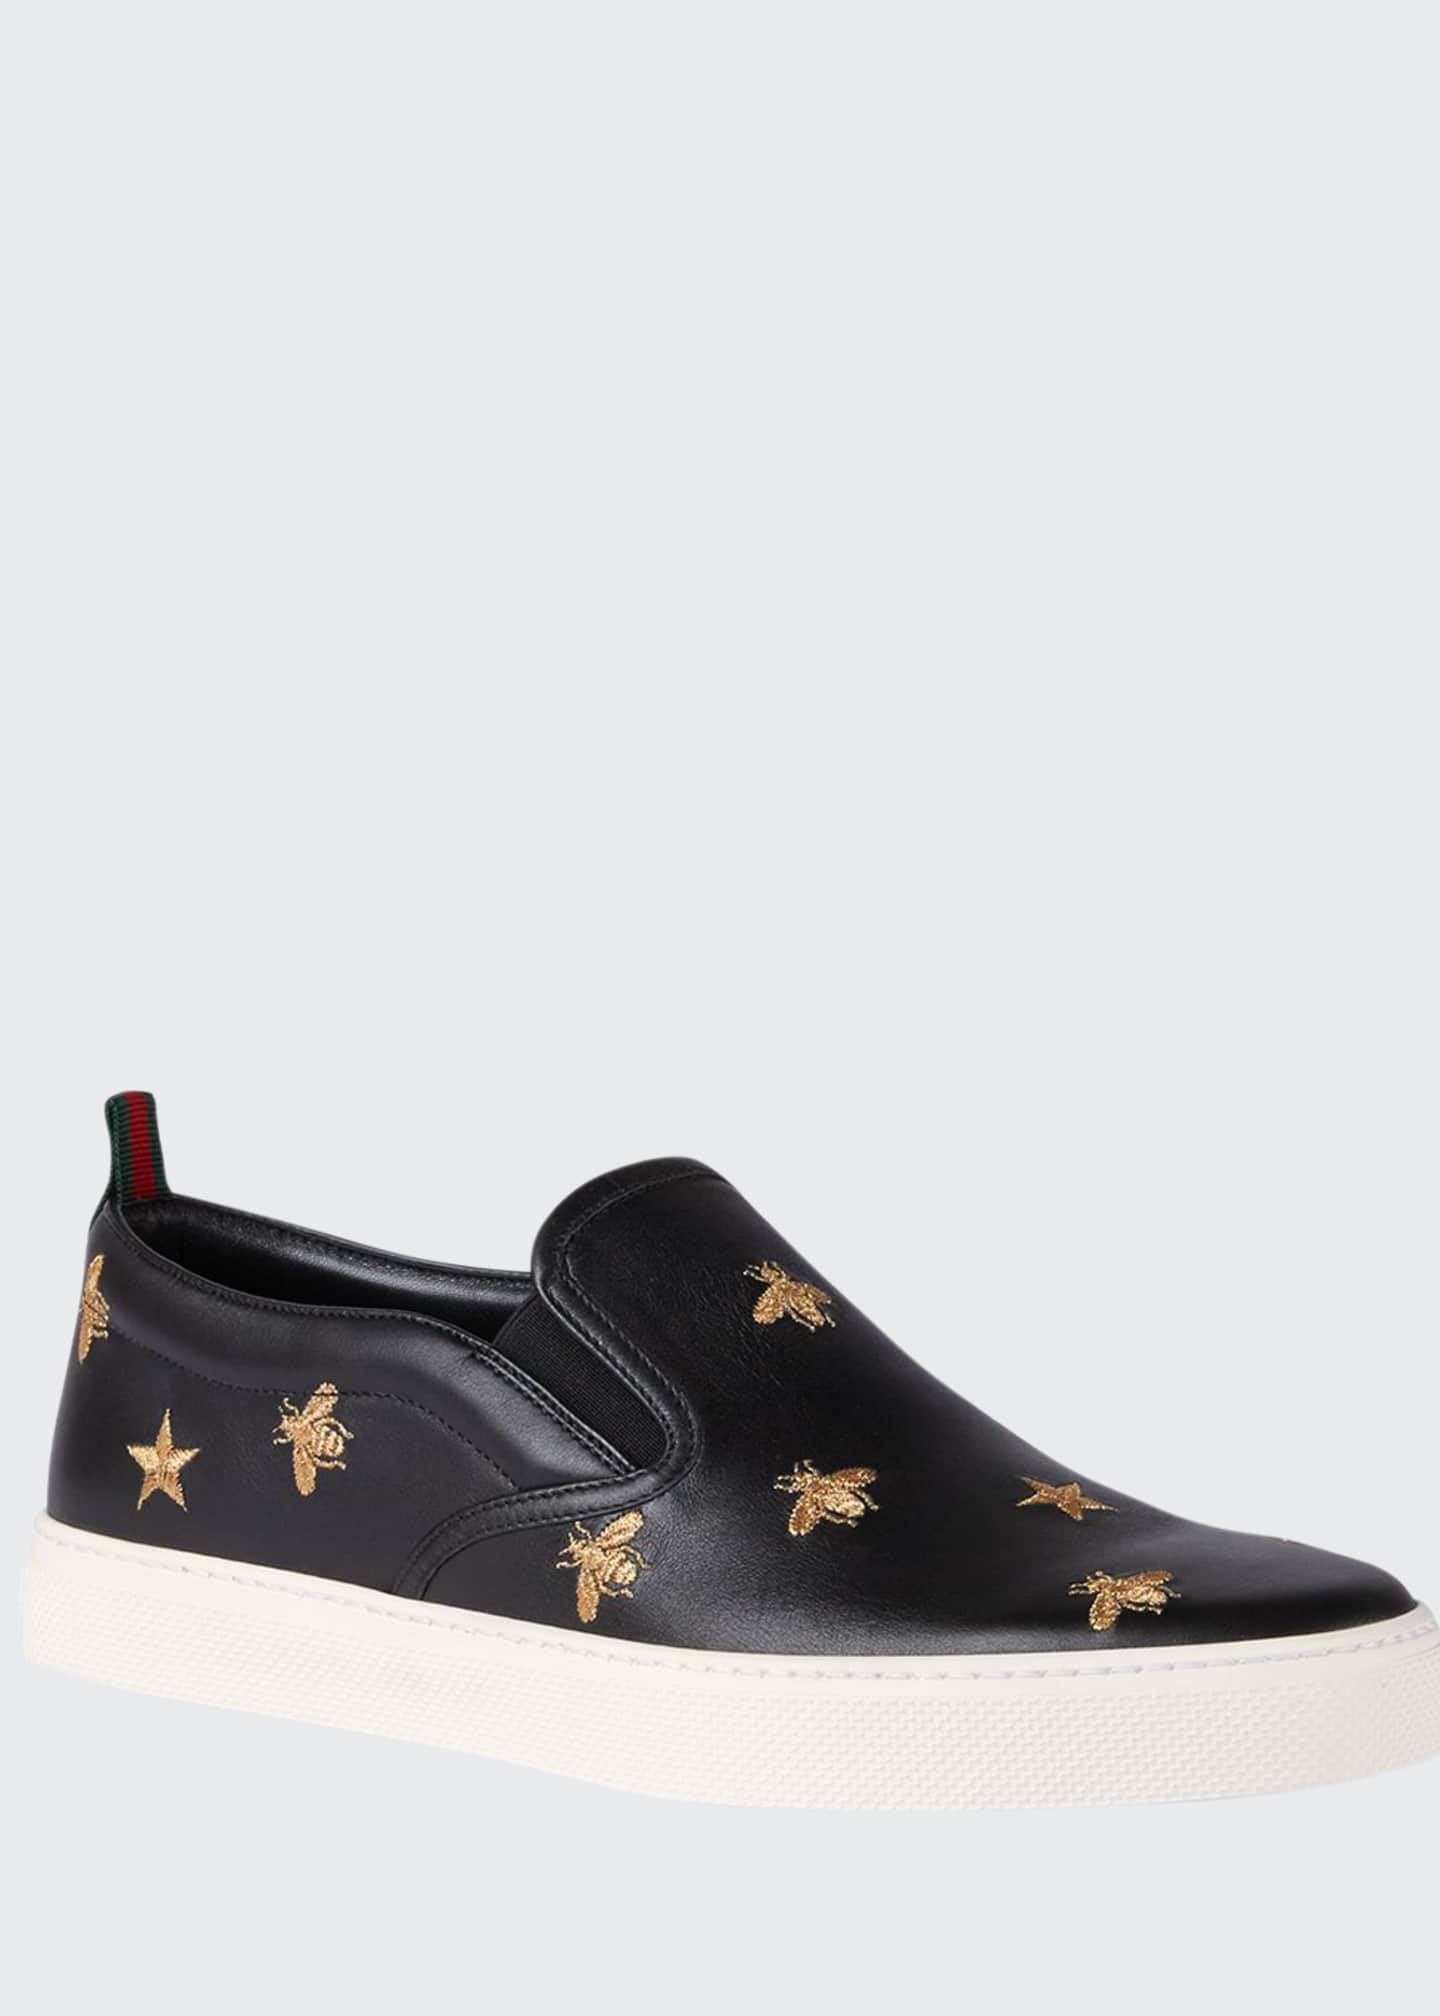 Gucci Men's Dublin Bee & Star Embroidered Leather